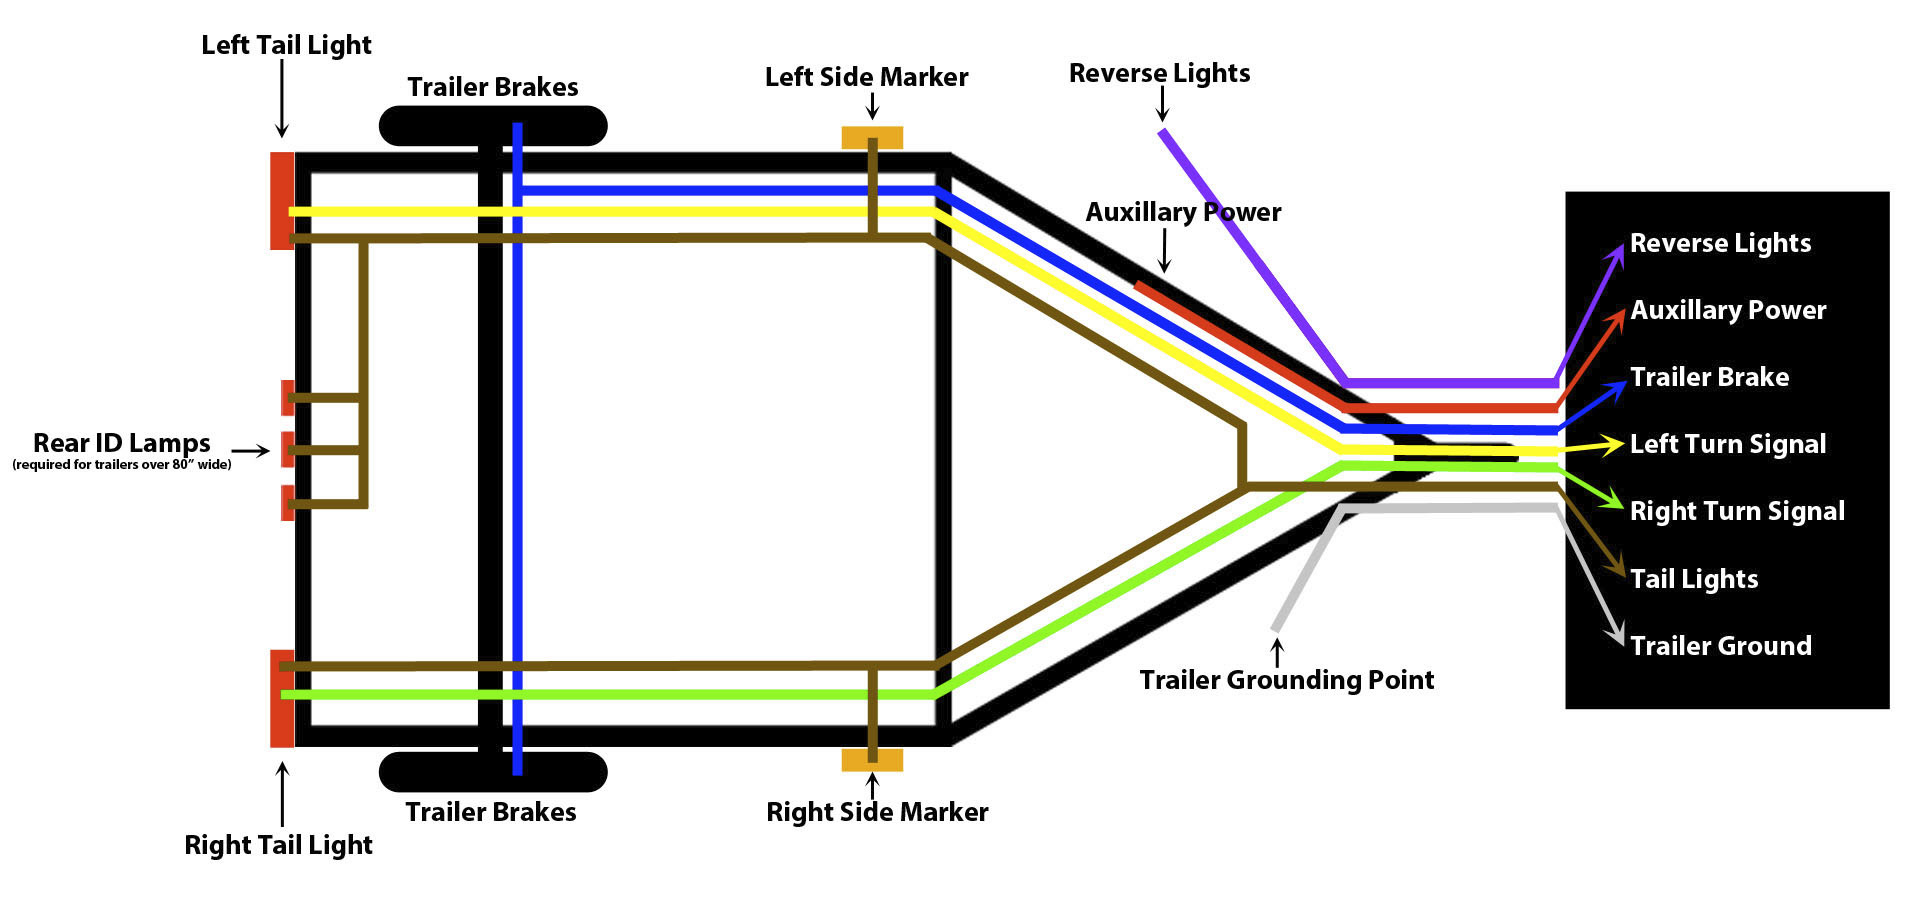 How To Wire Trailer Lights - Trailer Wiring Guide & Videos - Seven Way Trailer Wiring Diagram